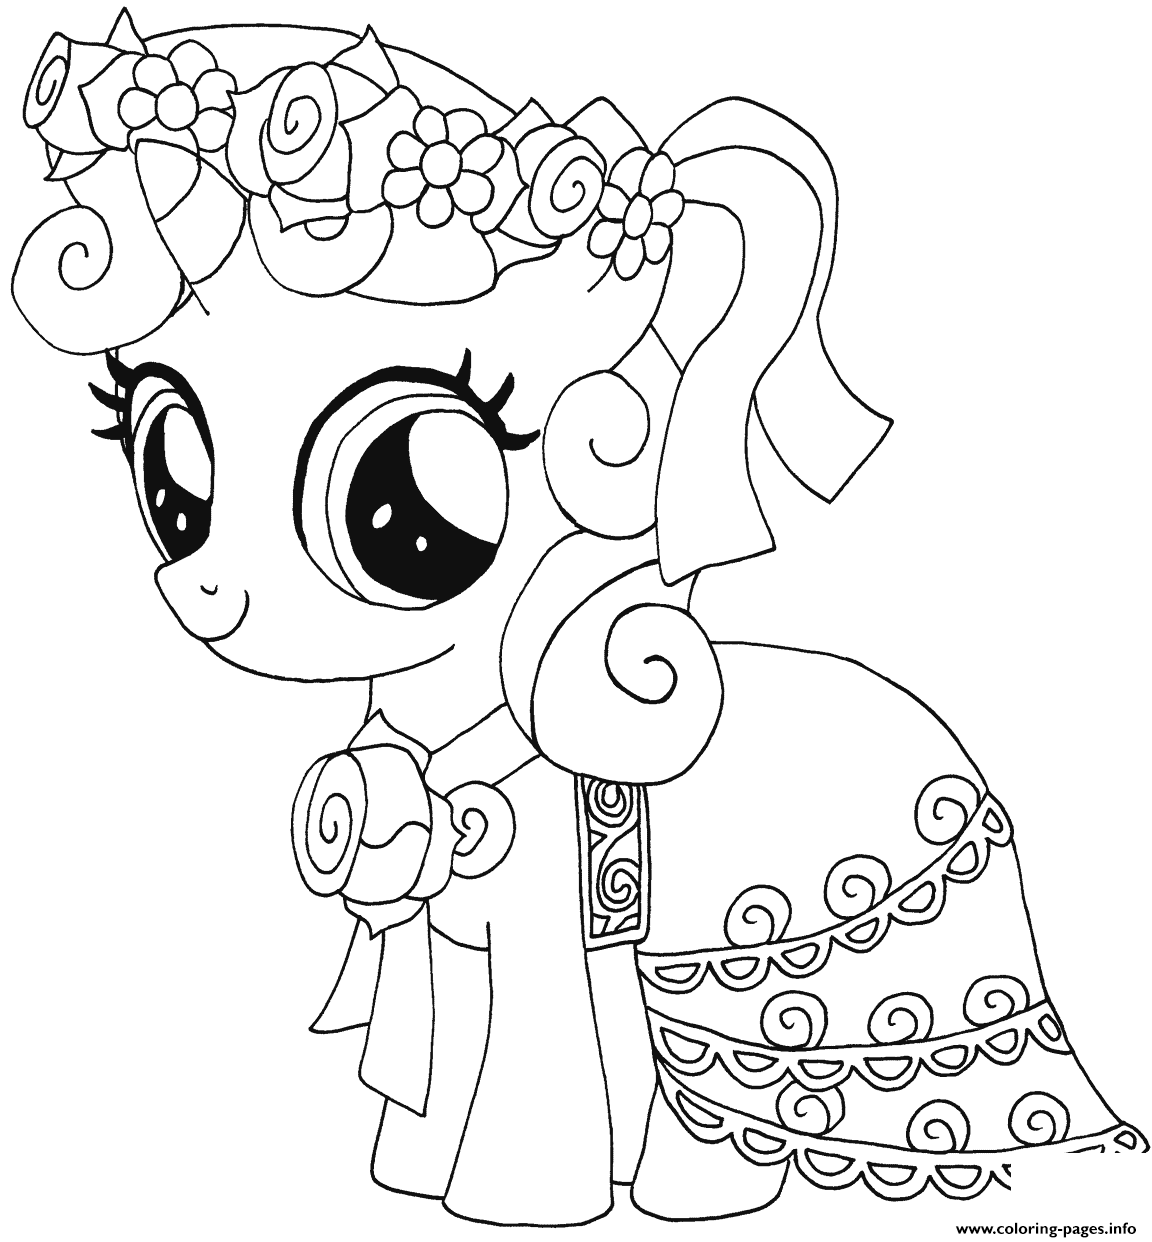 Print Sweetie Belle My Little Pony Coloring Pages My Little Pony Coloring Pony Drawing Horse Coloring Pages